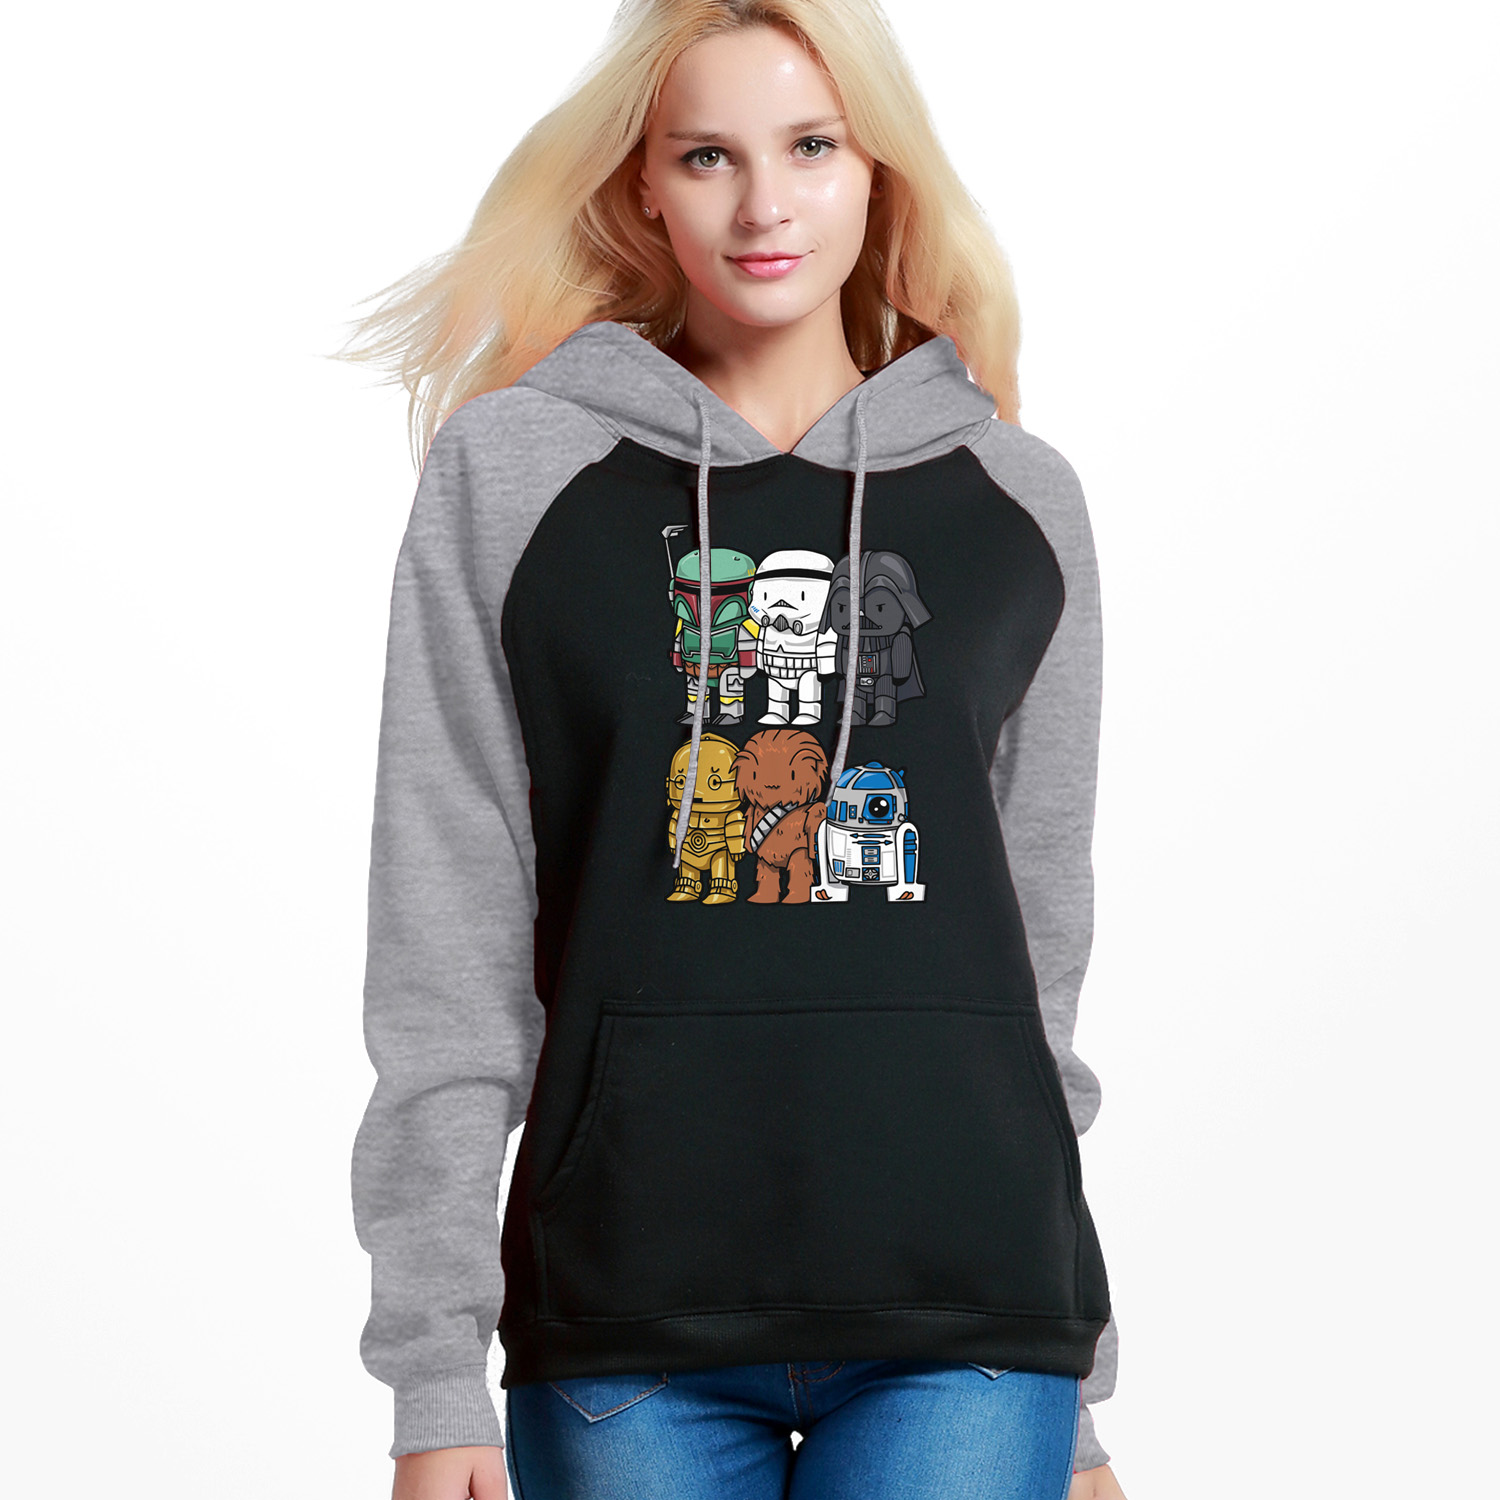 Star Wars Hoodies Sweatshirt Women Yoda Darth Vader Hooded Sweatshirts Hoodies Winter Autumn Fleece Streetwear Starwars Pullover